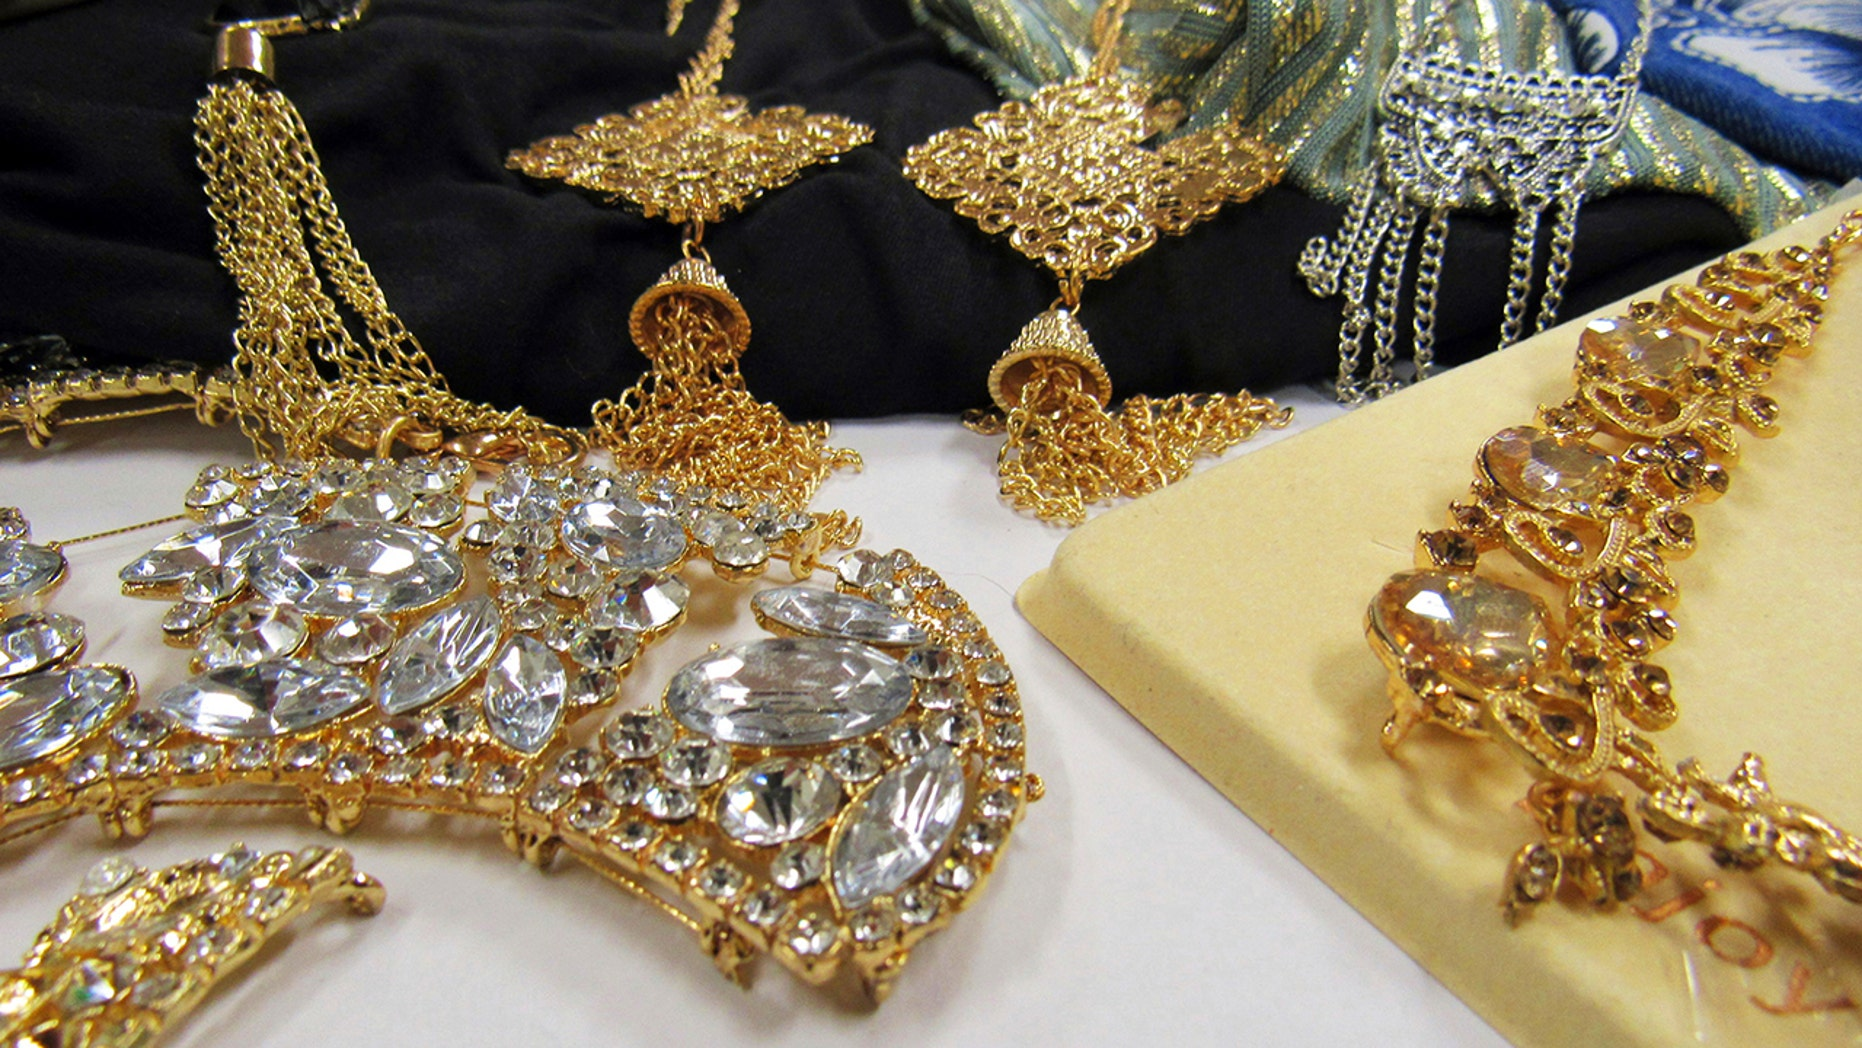 This Sept. 20, 2018 photo provided by the Center for Environmental Health (CEH) in Oakland, Calif., shows jewelry items loaded with the toxic metal cadmium they bought from the shelves of national retailers